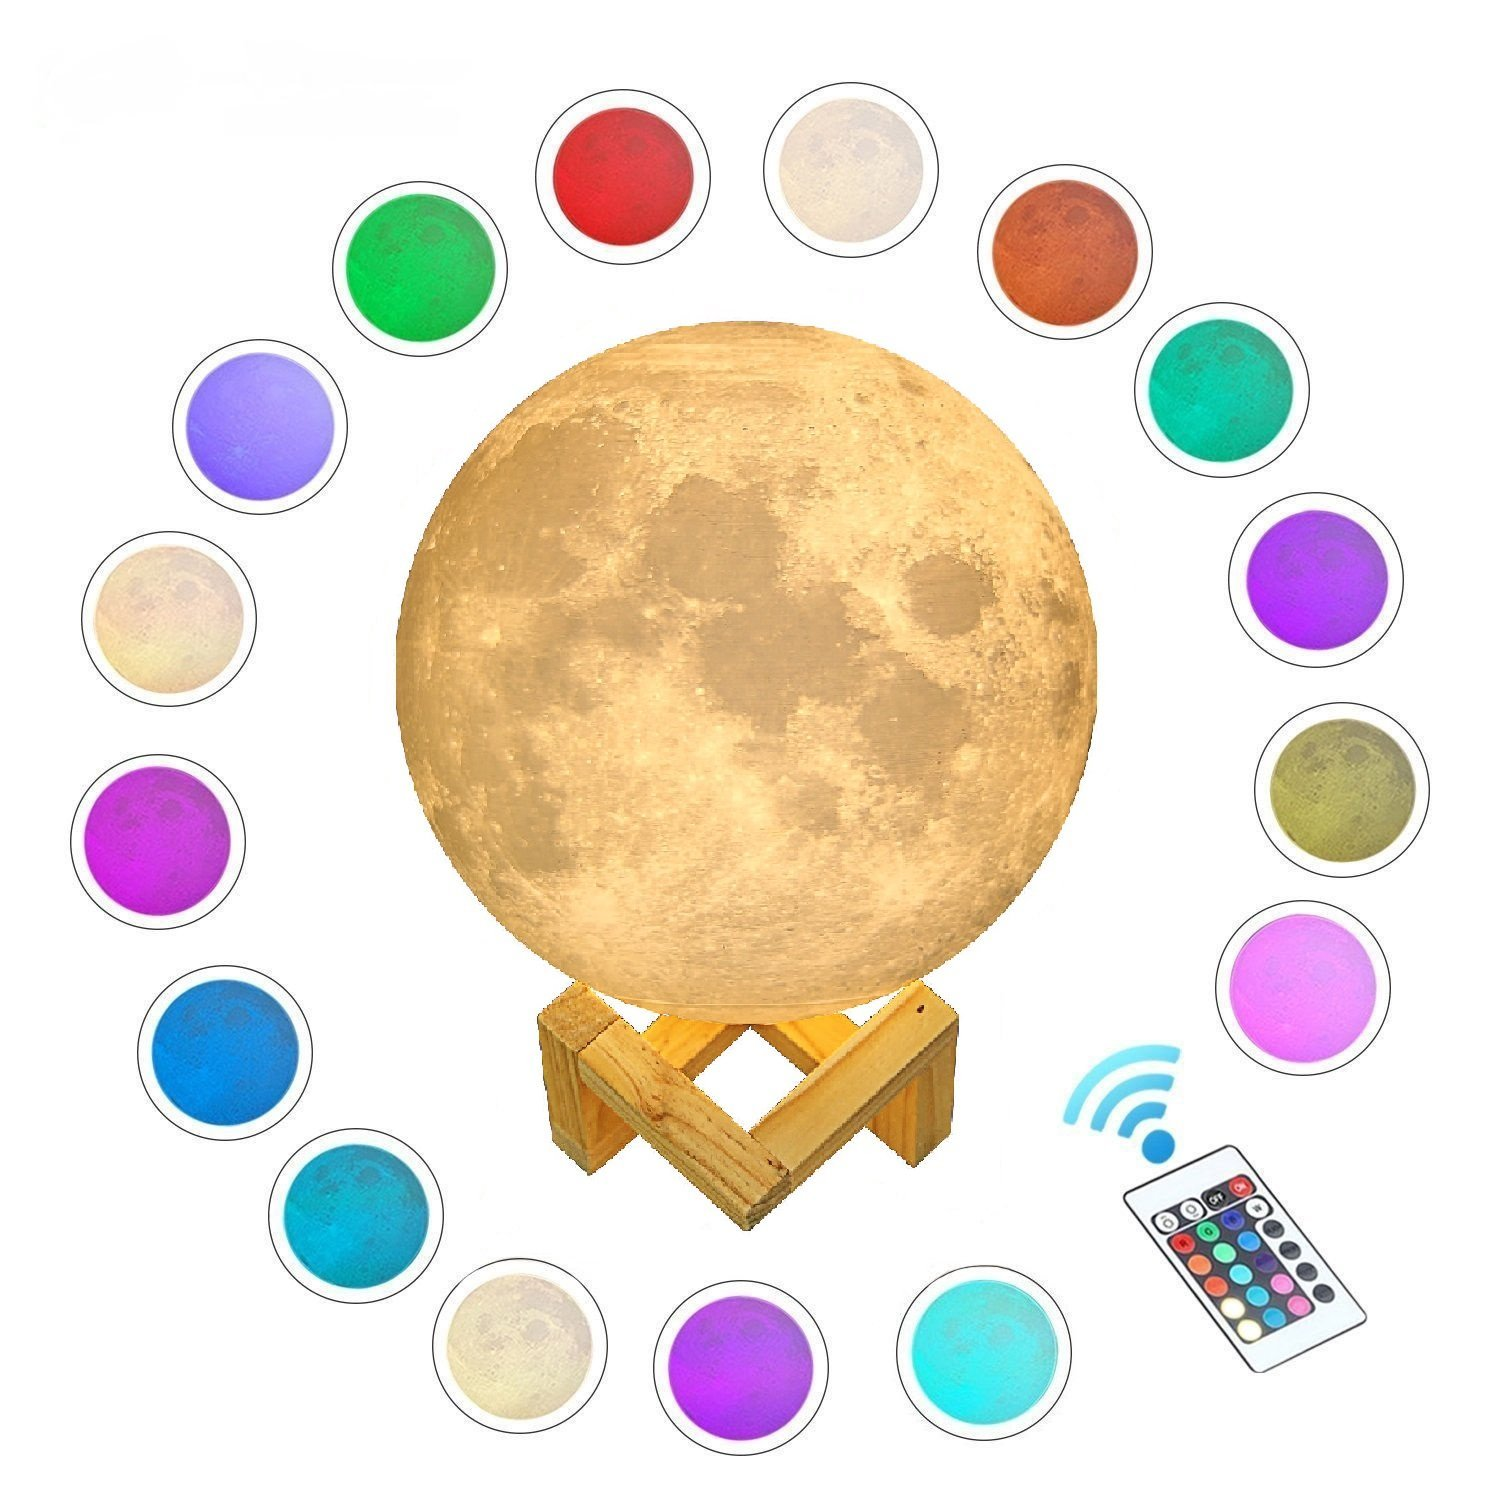 Gahaya 16 Colors 【Seamless】 Moon Lamp, 【Remote】 & Touch Control, Unibody Forming 3D Printed, PLA material, USB Recharge, Diameter 7.1''/18cm